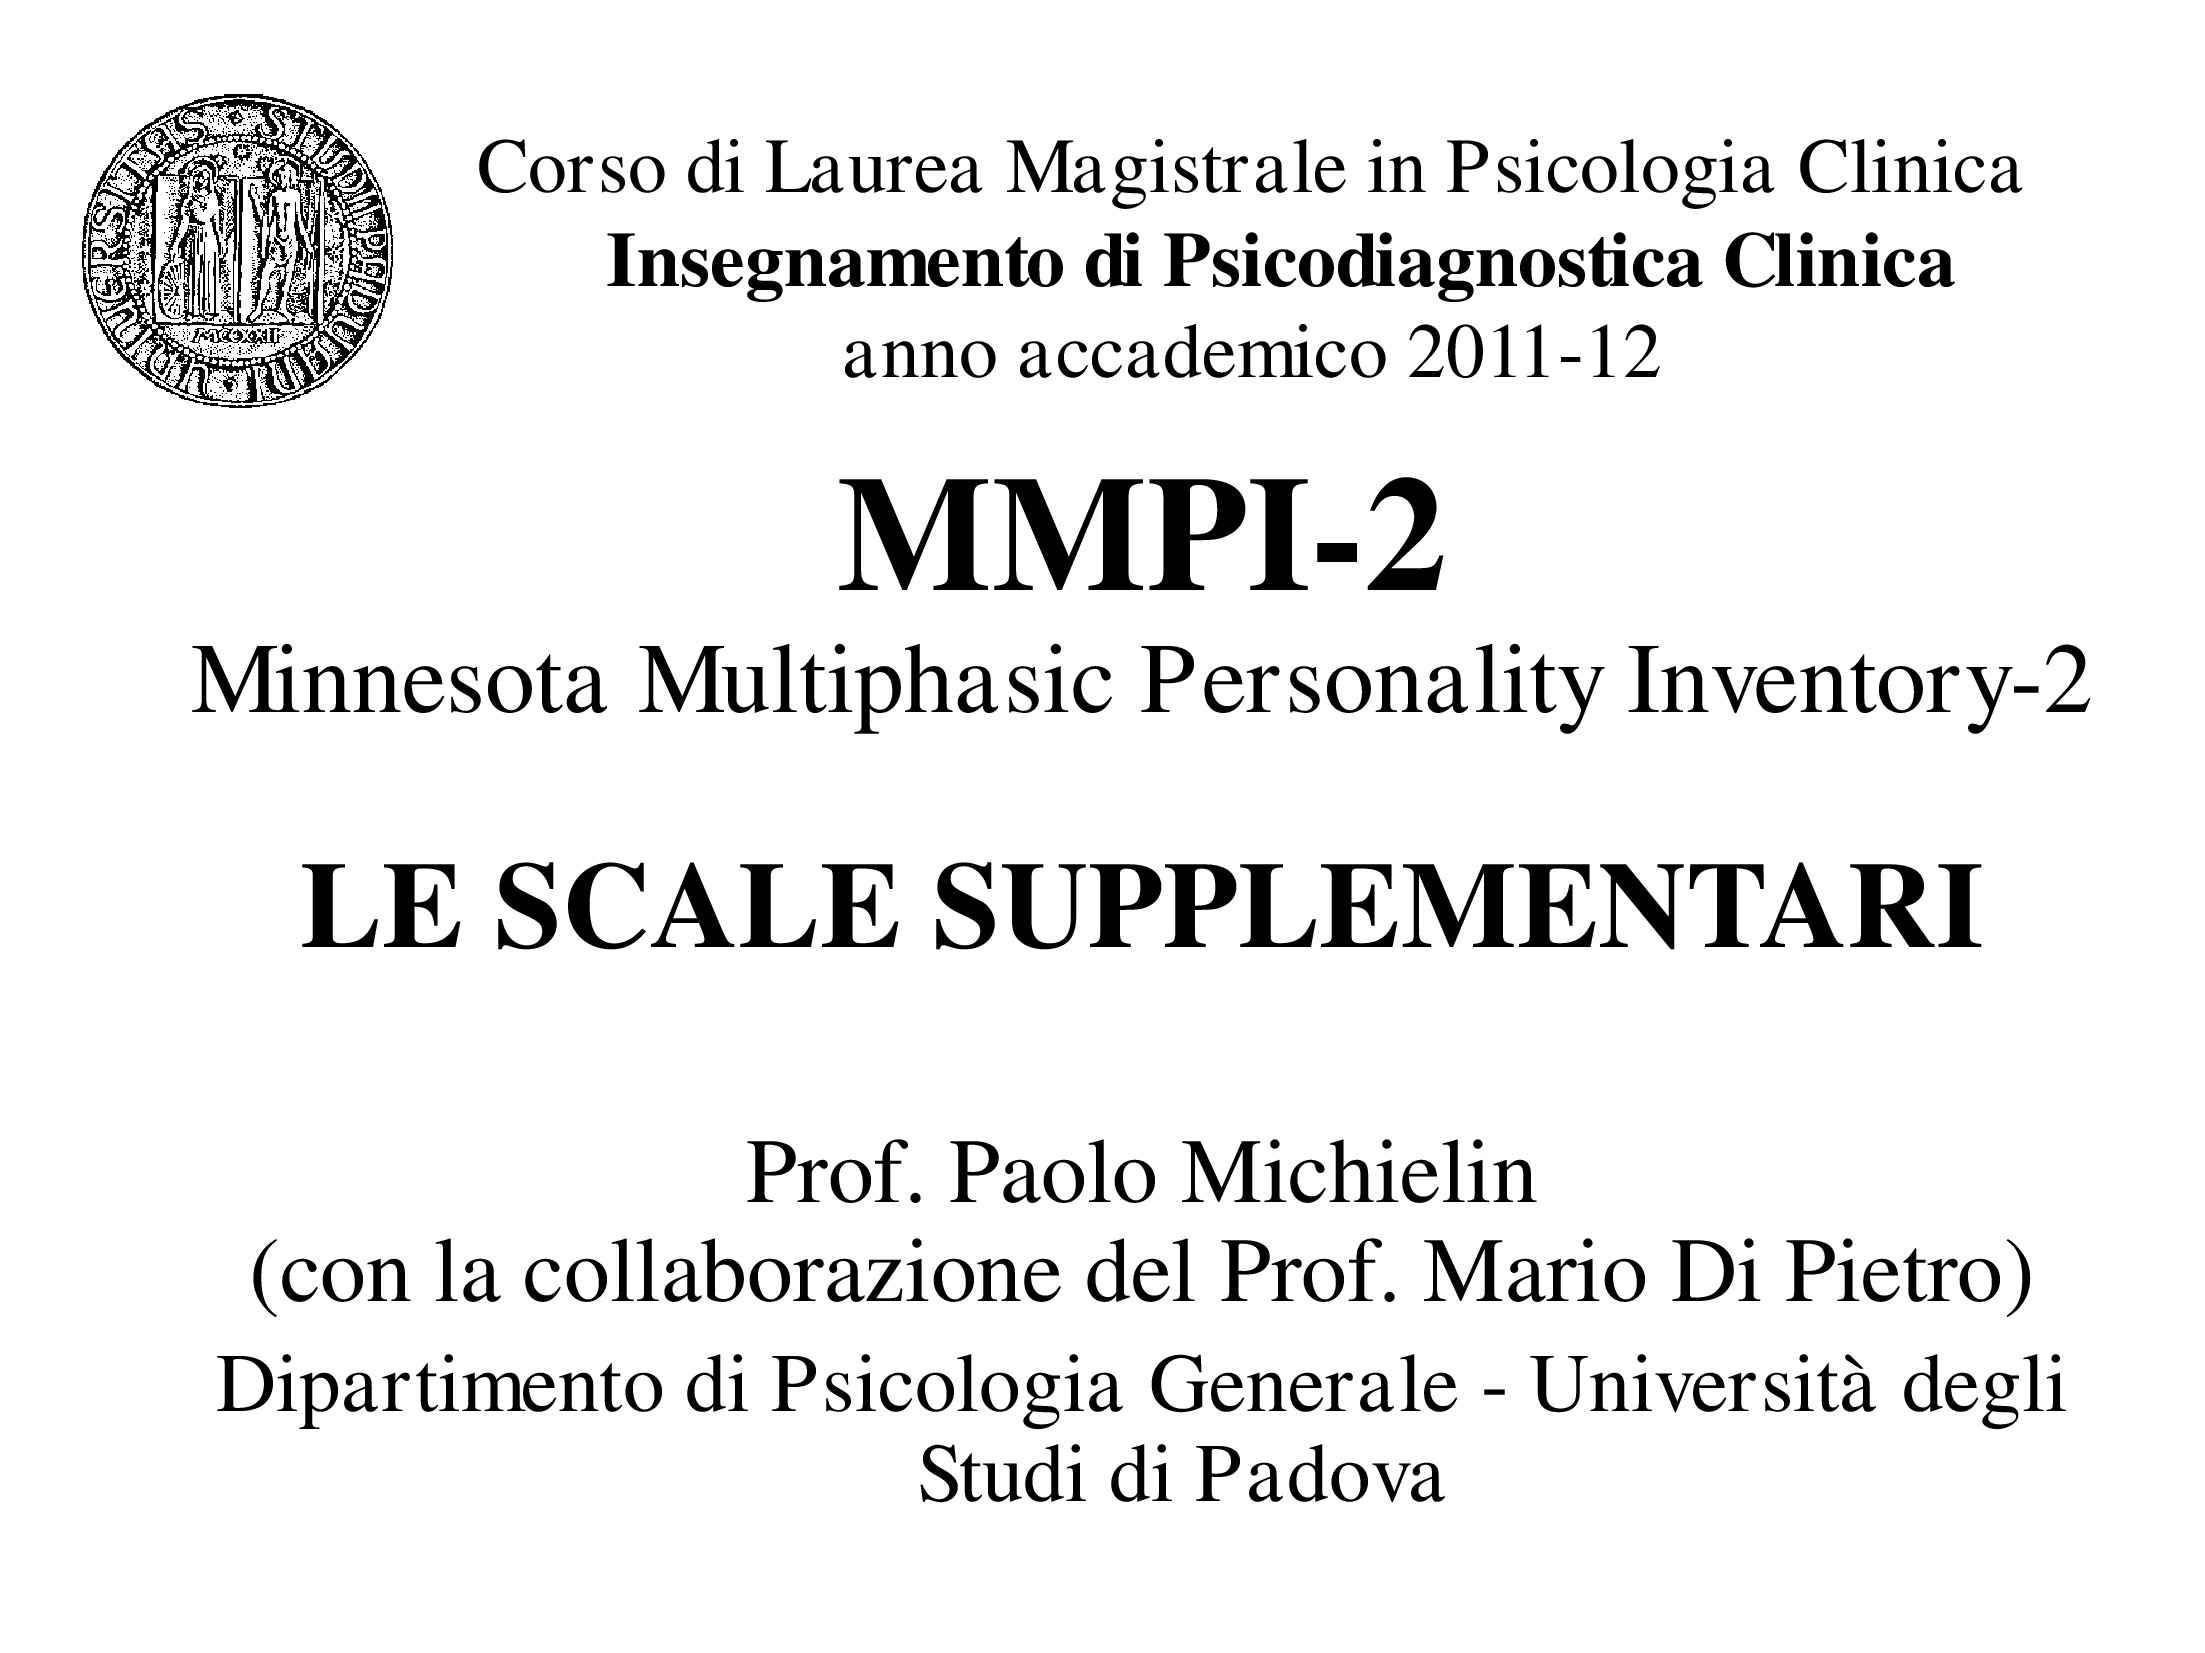 Scale supplementari dell'MMPI-2